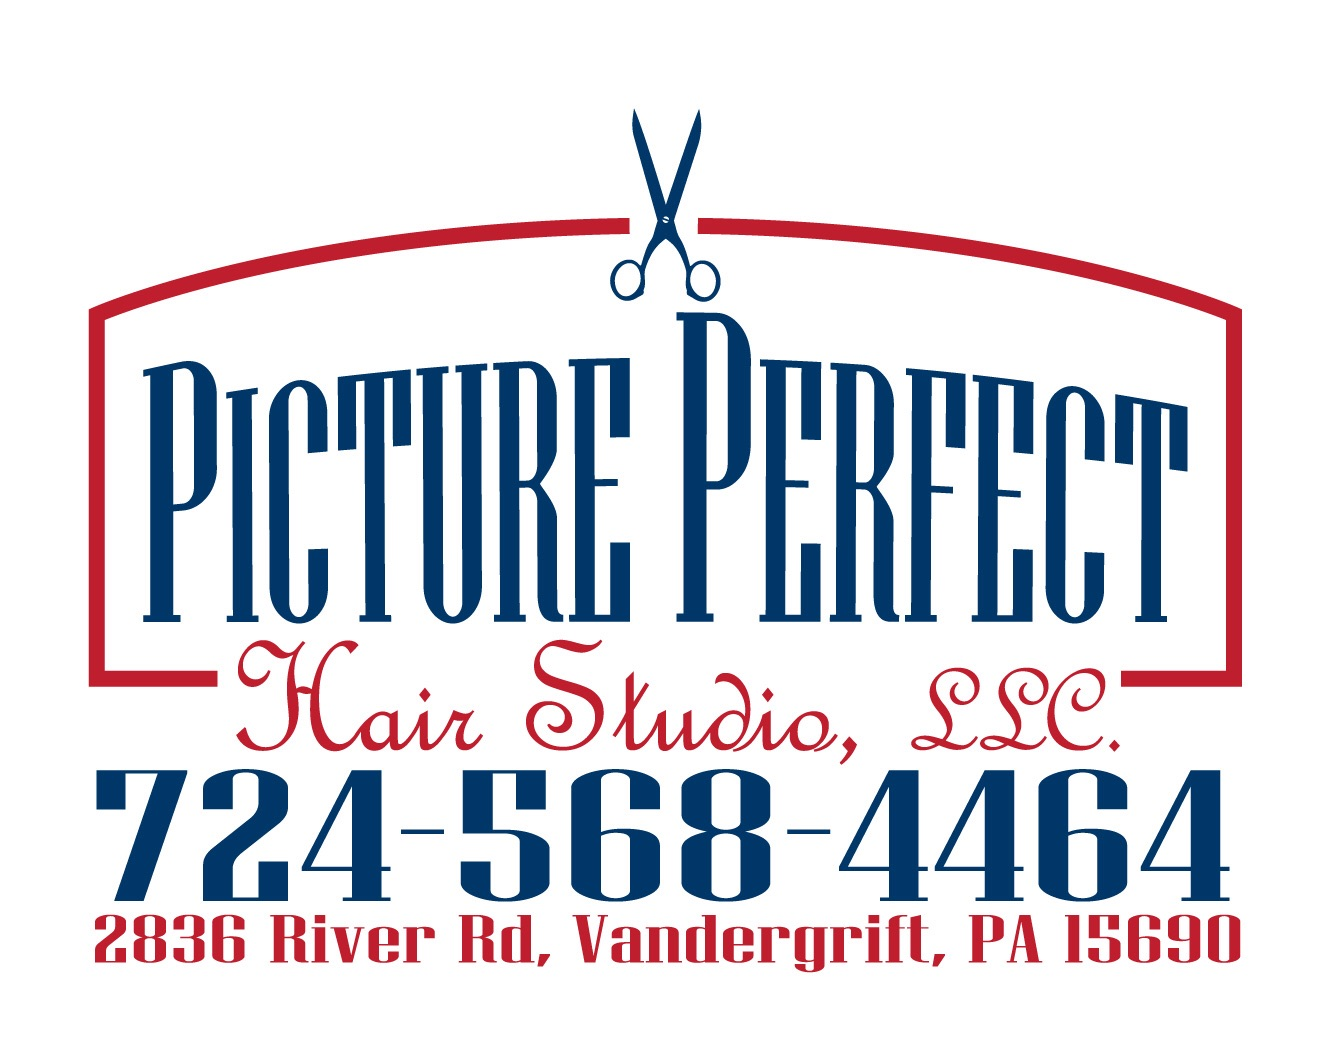 PICTURE PERFECT HAIR STUDIO LLC